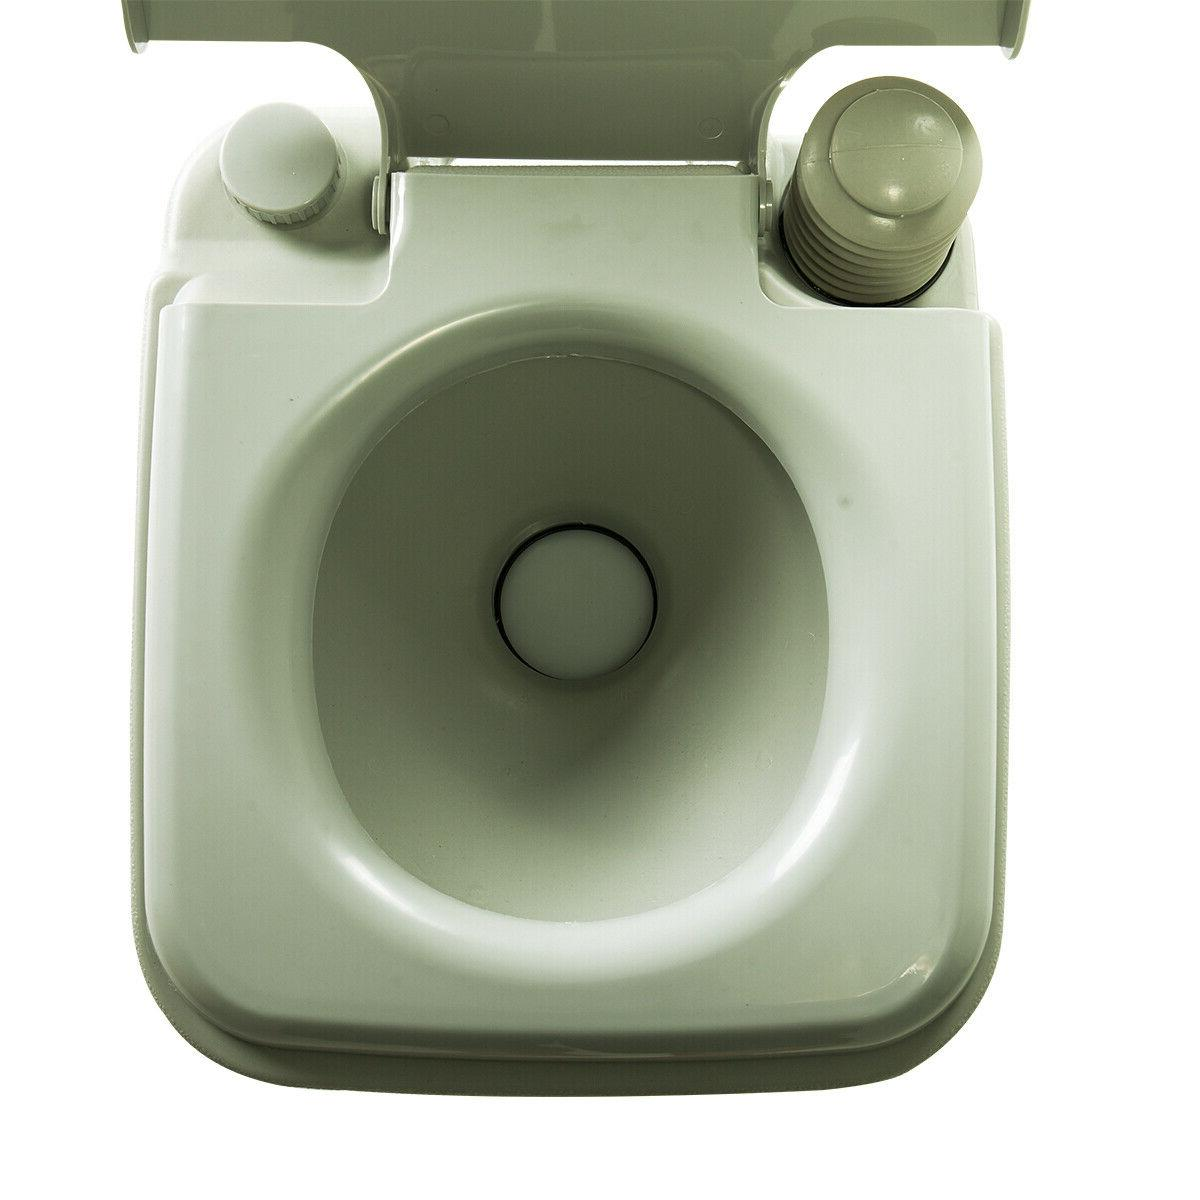 Portable Travel Camping Commode Potty Outdoor/Indoor 5